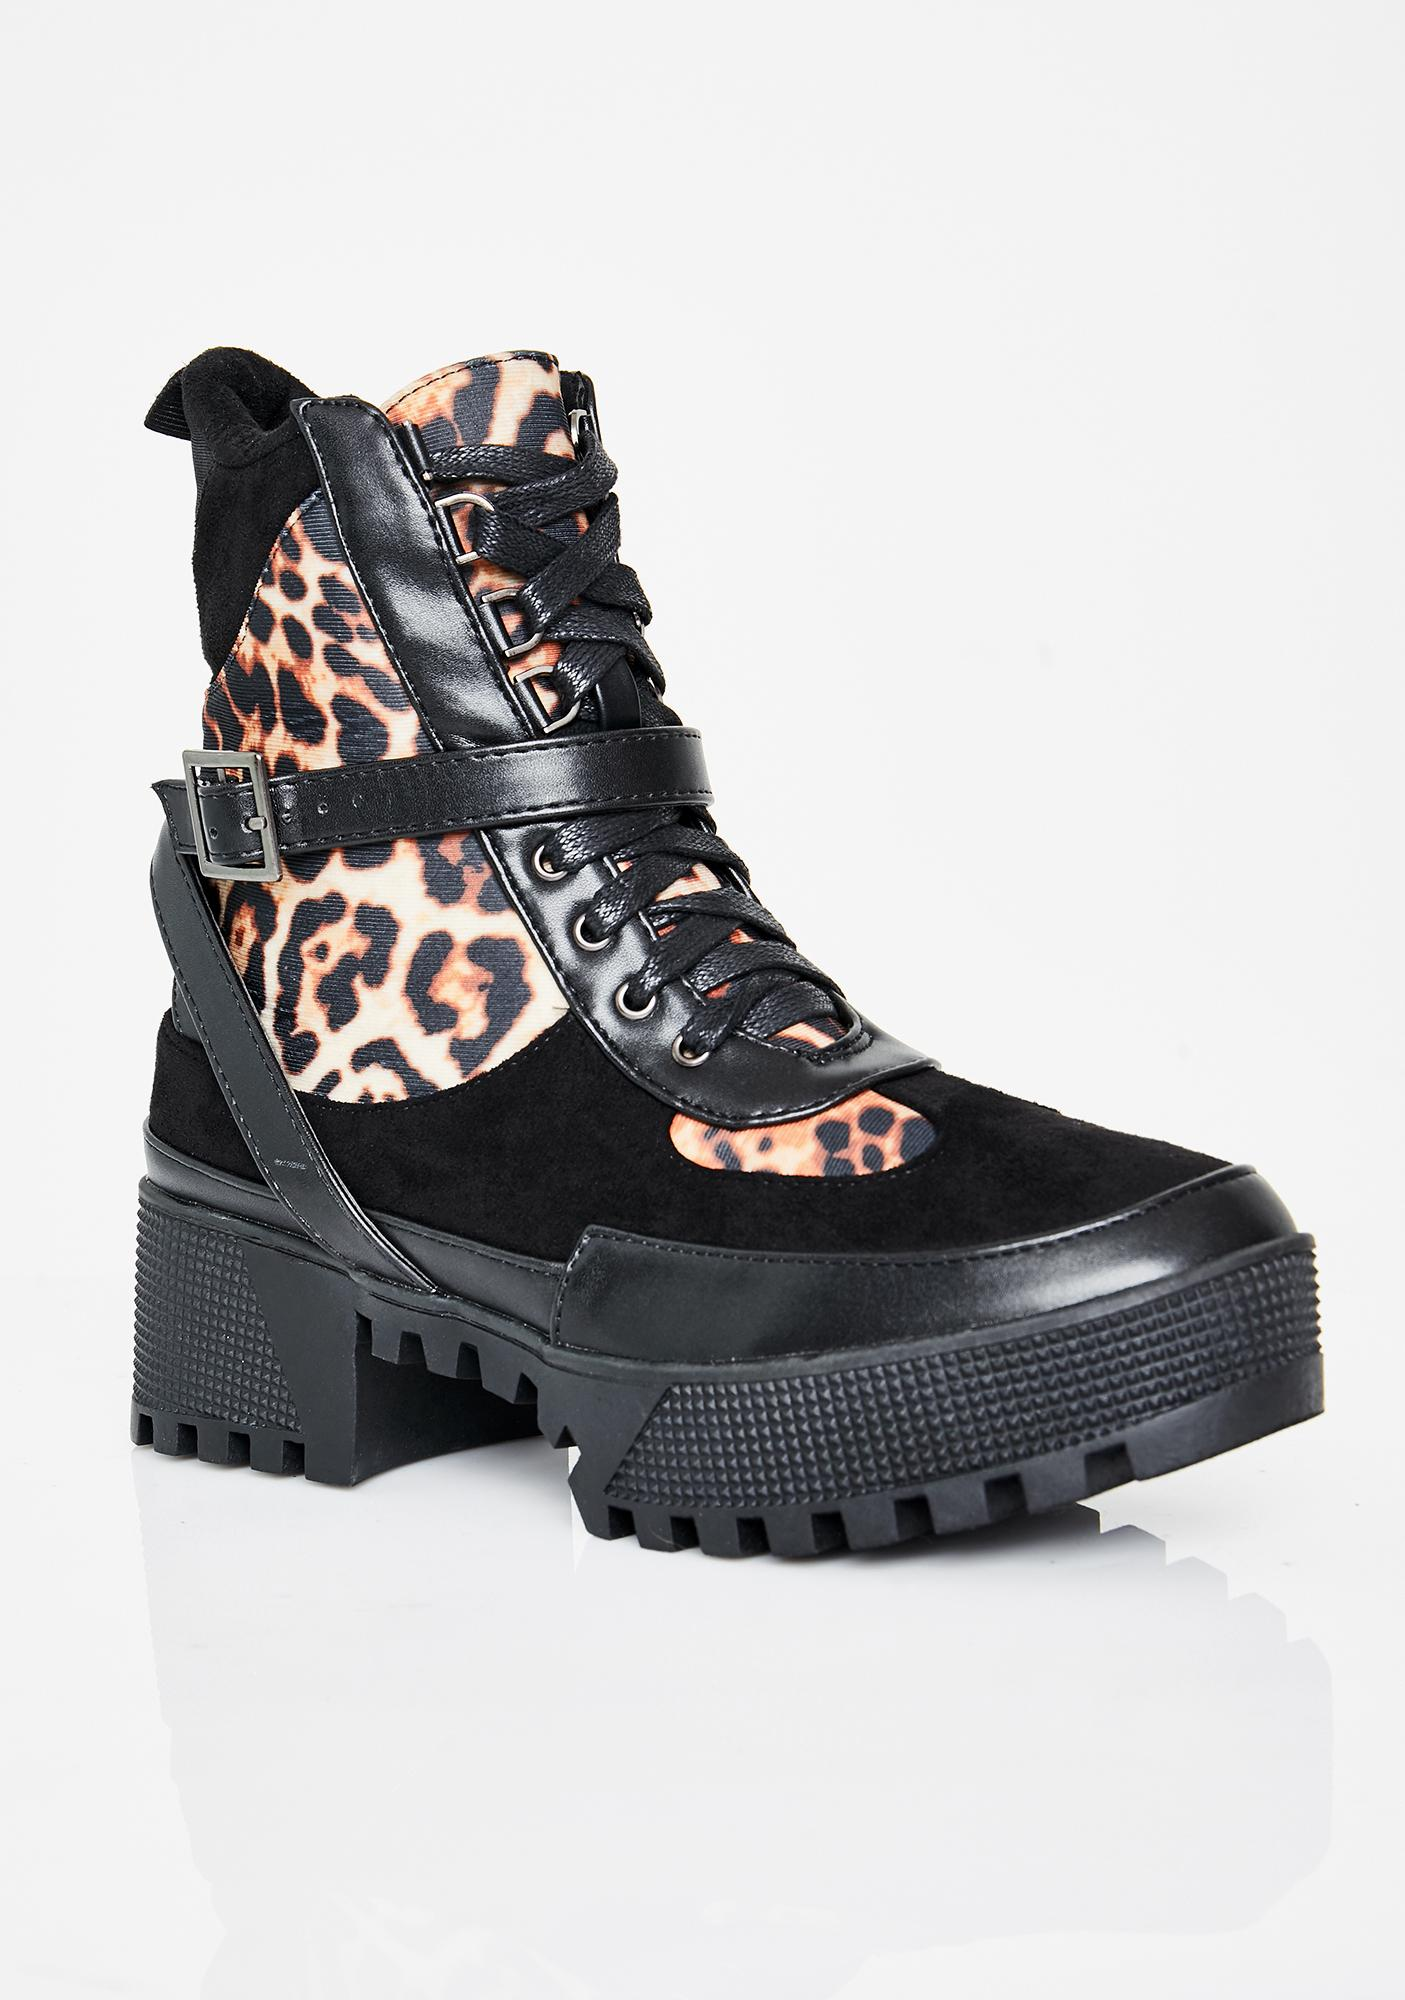 Chase The Ace Combat Boots